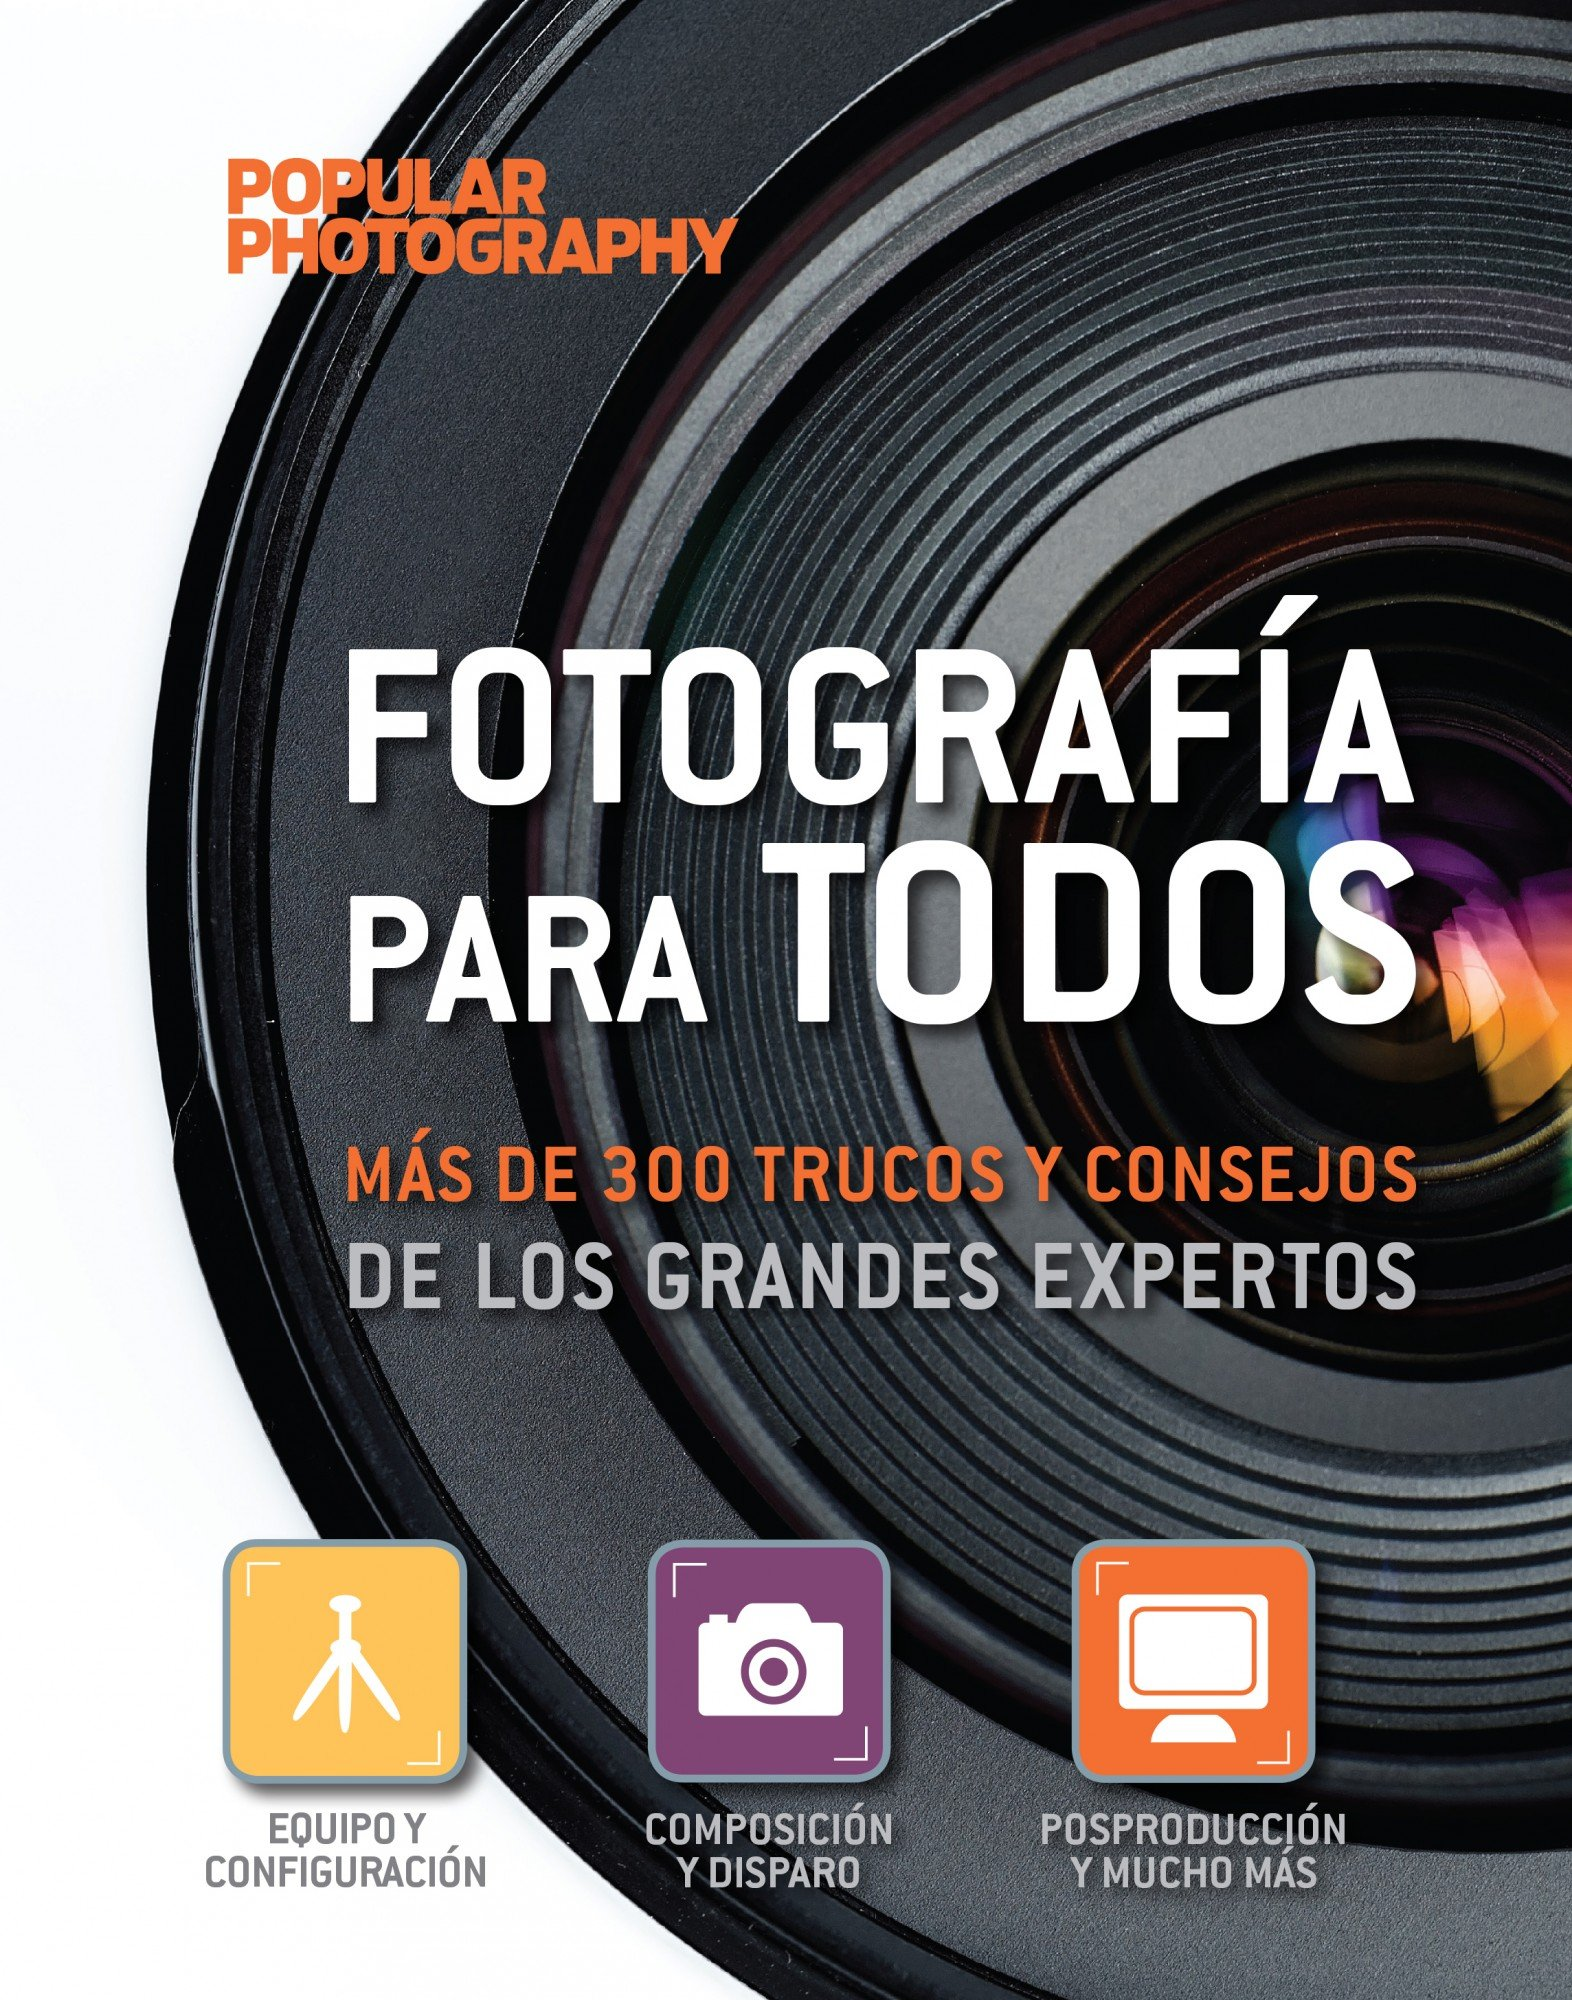 Photographic Possibilities: The Expressive Use of Equipment Ideas Materials and Processes